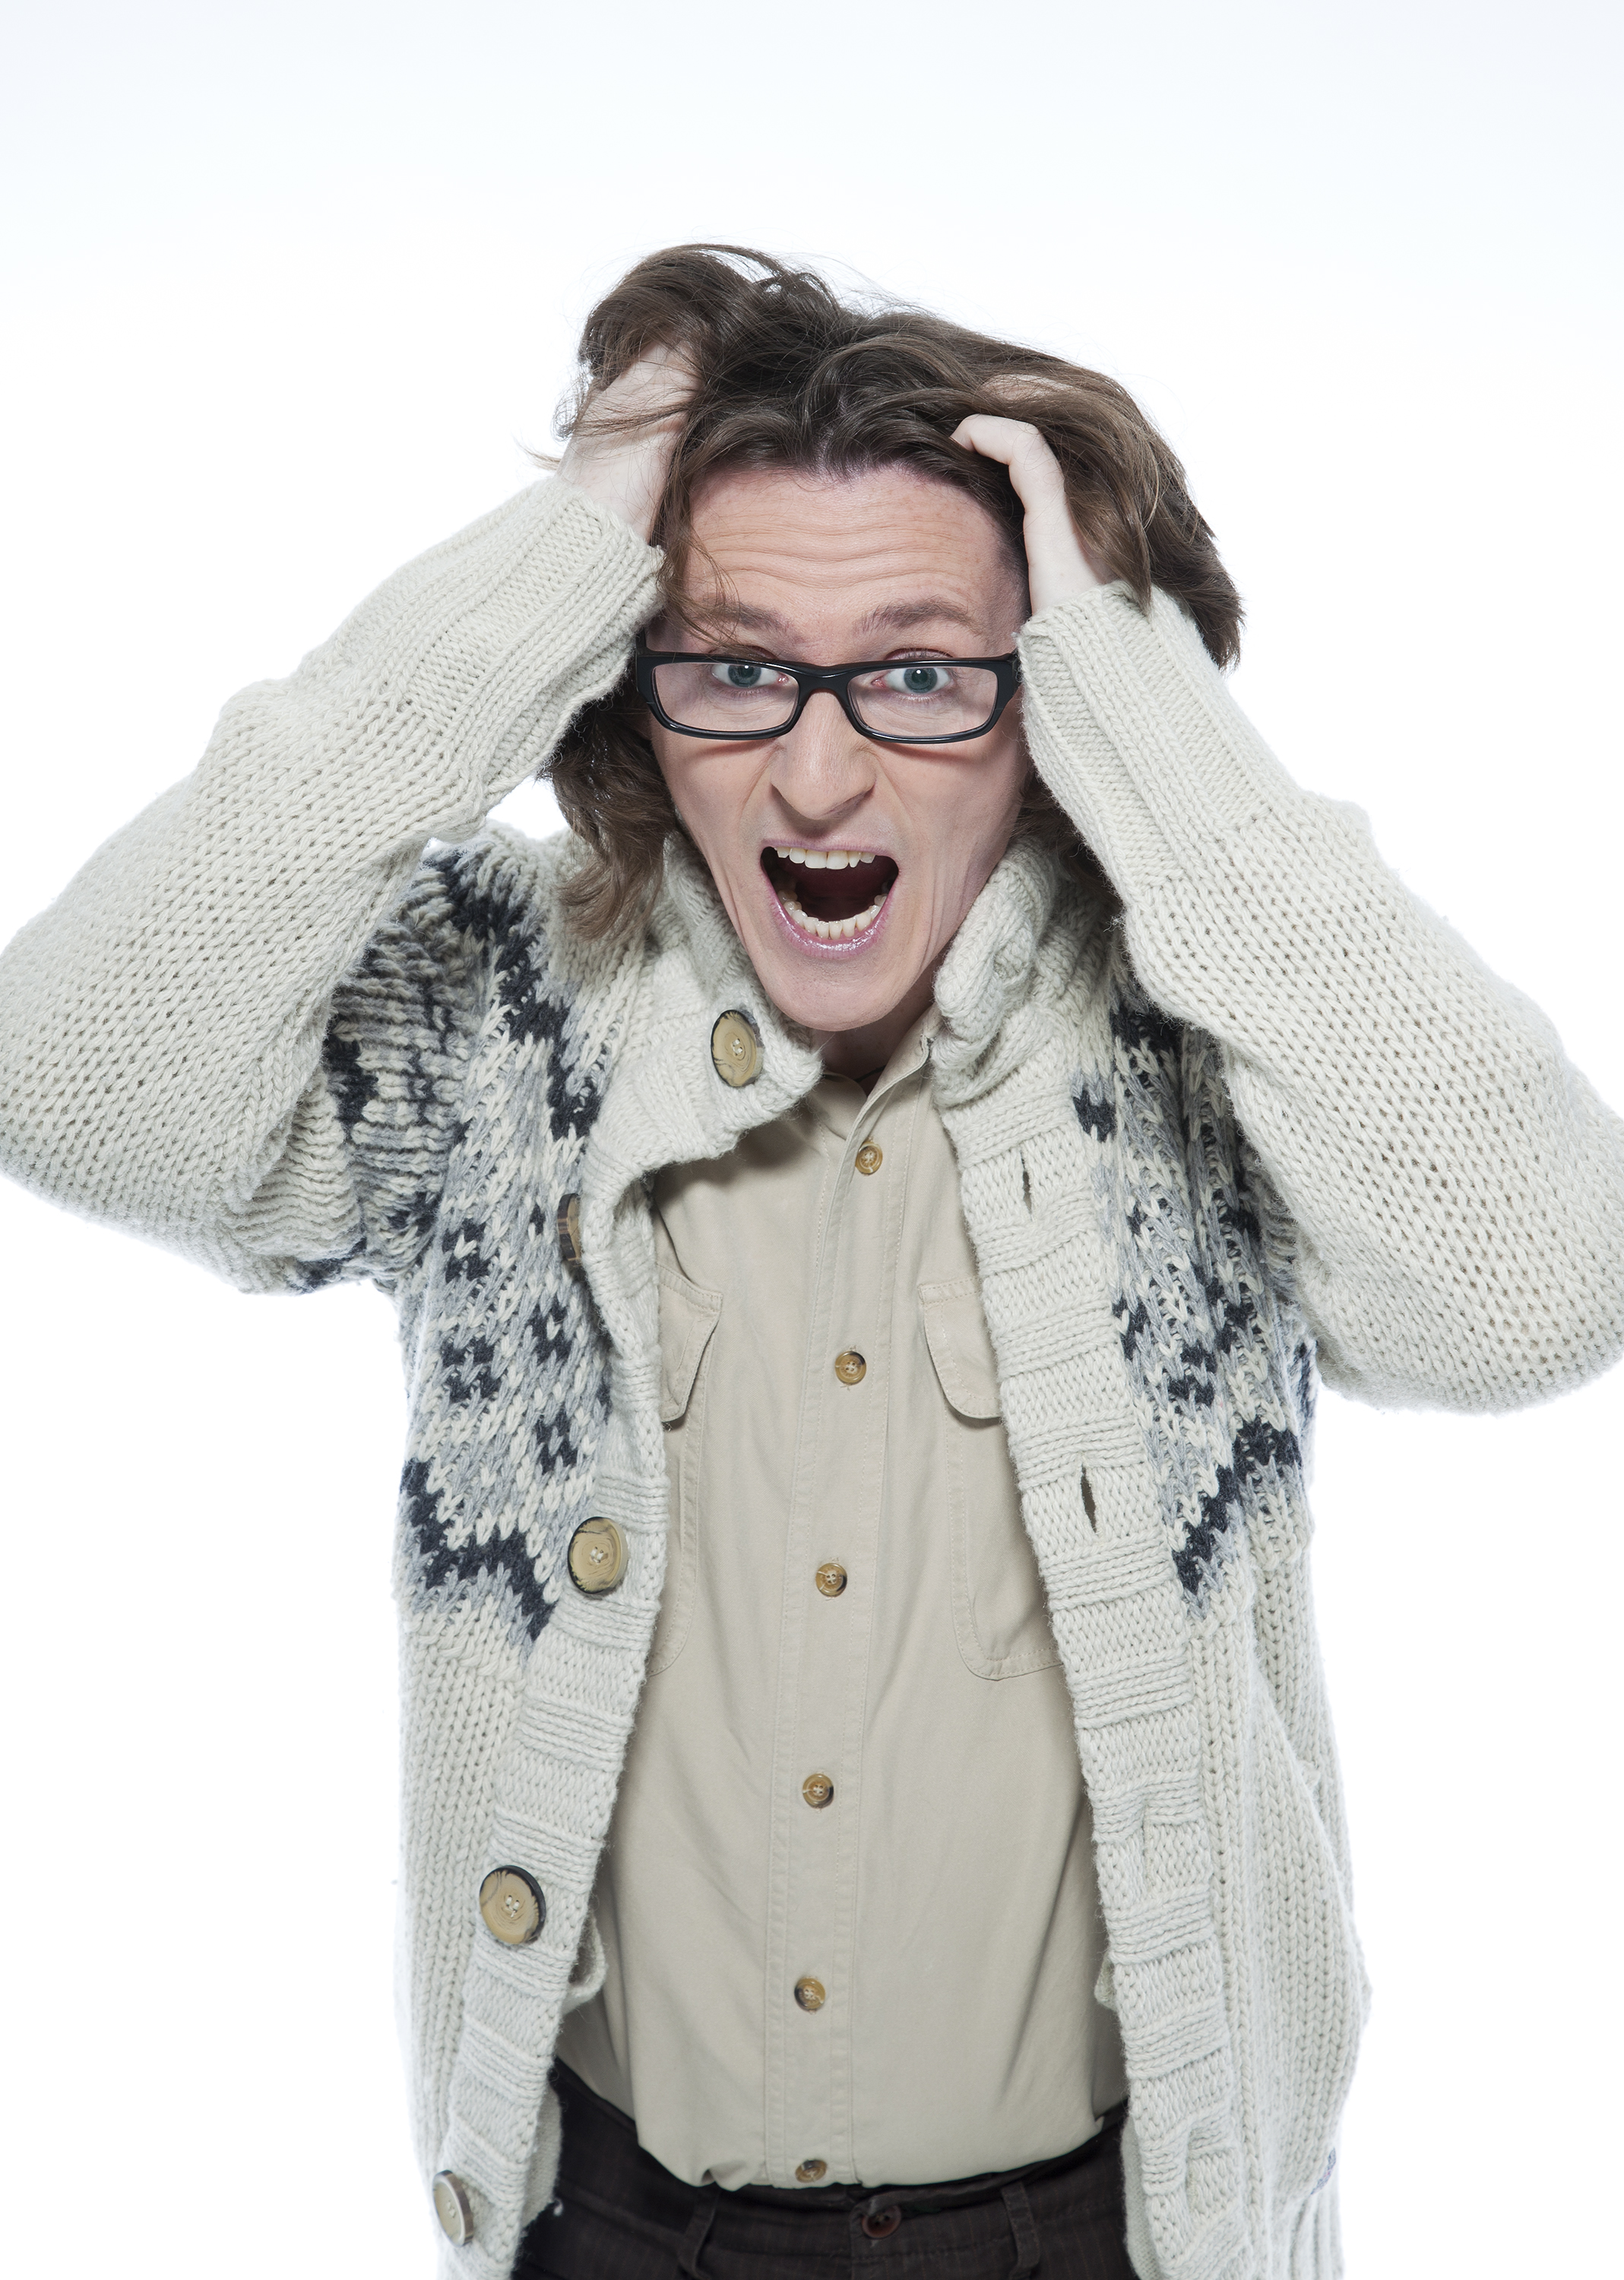 Comedian Ed Byrne on air guitar, being Dara O'Briain's best man and GTA at the Bake Off